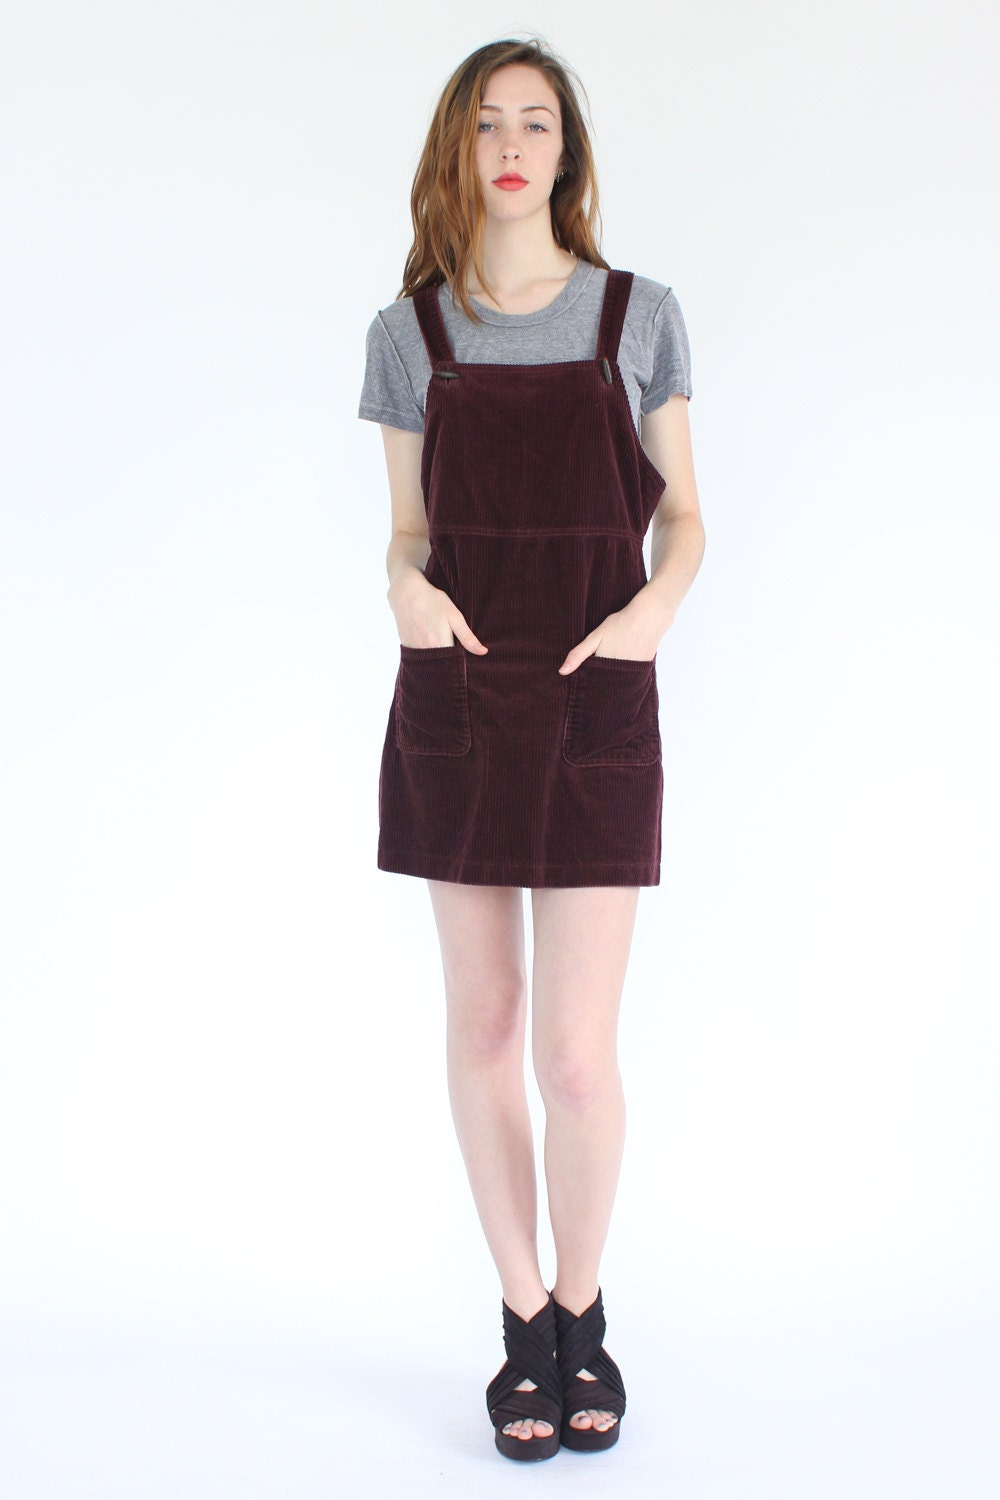 Vintage 90s berry corduroy overall jumper dress